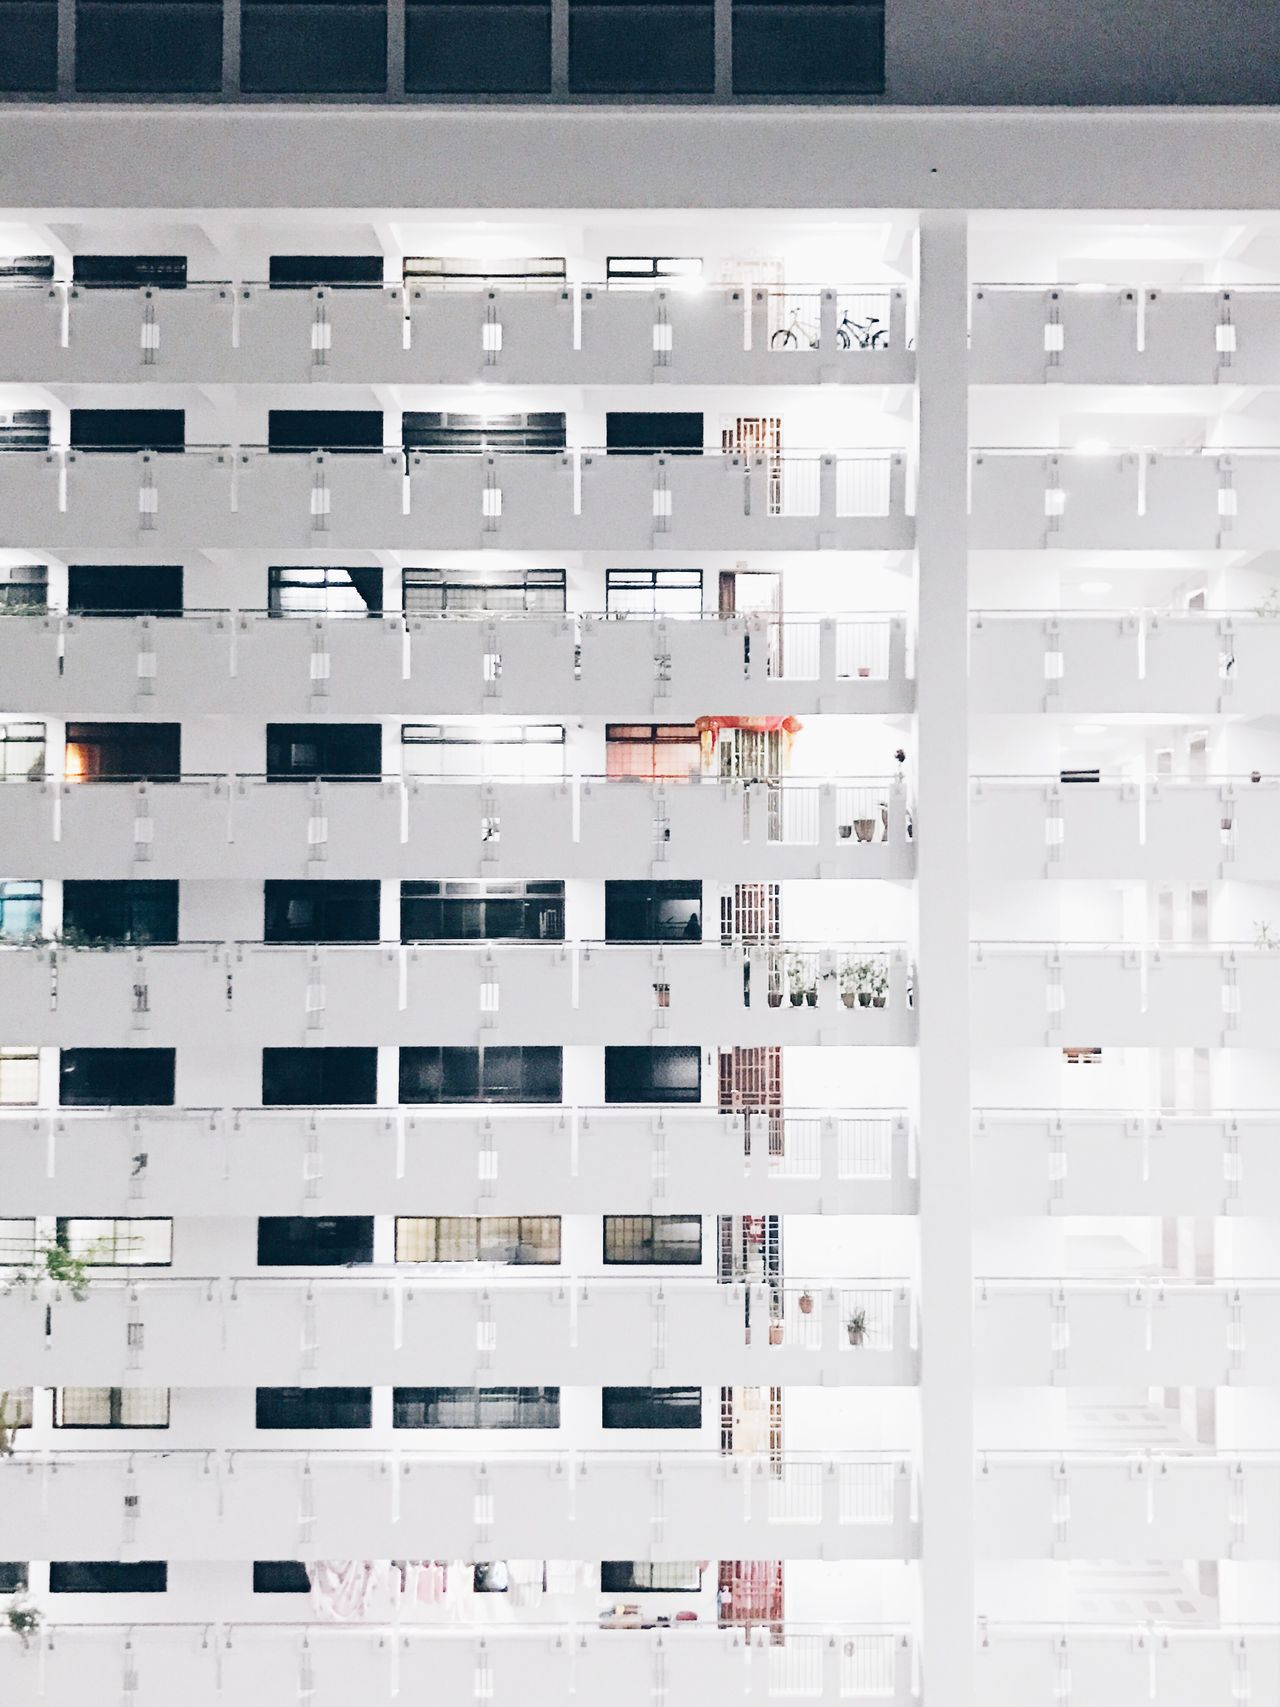 Architecture Apartment City Window Residential Building Full Frame Housing Development Day Indoors  No People White Photography